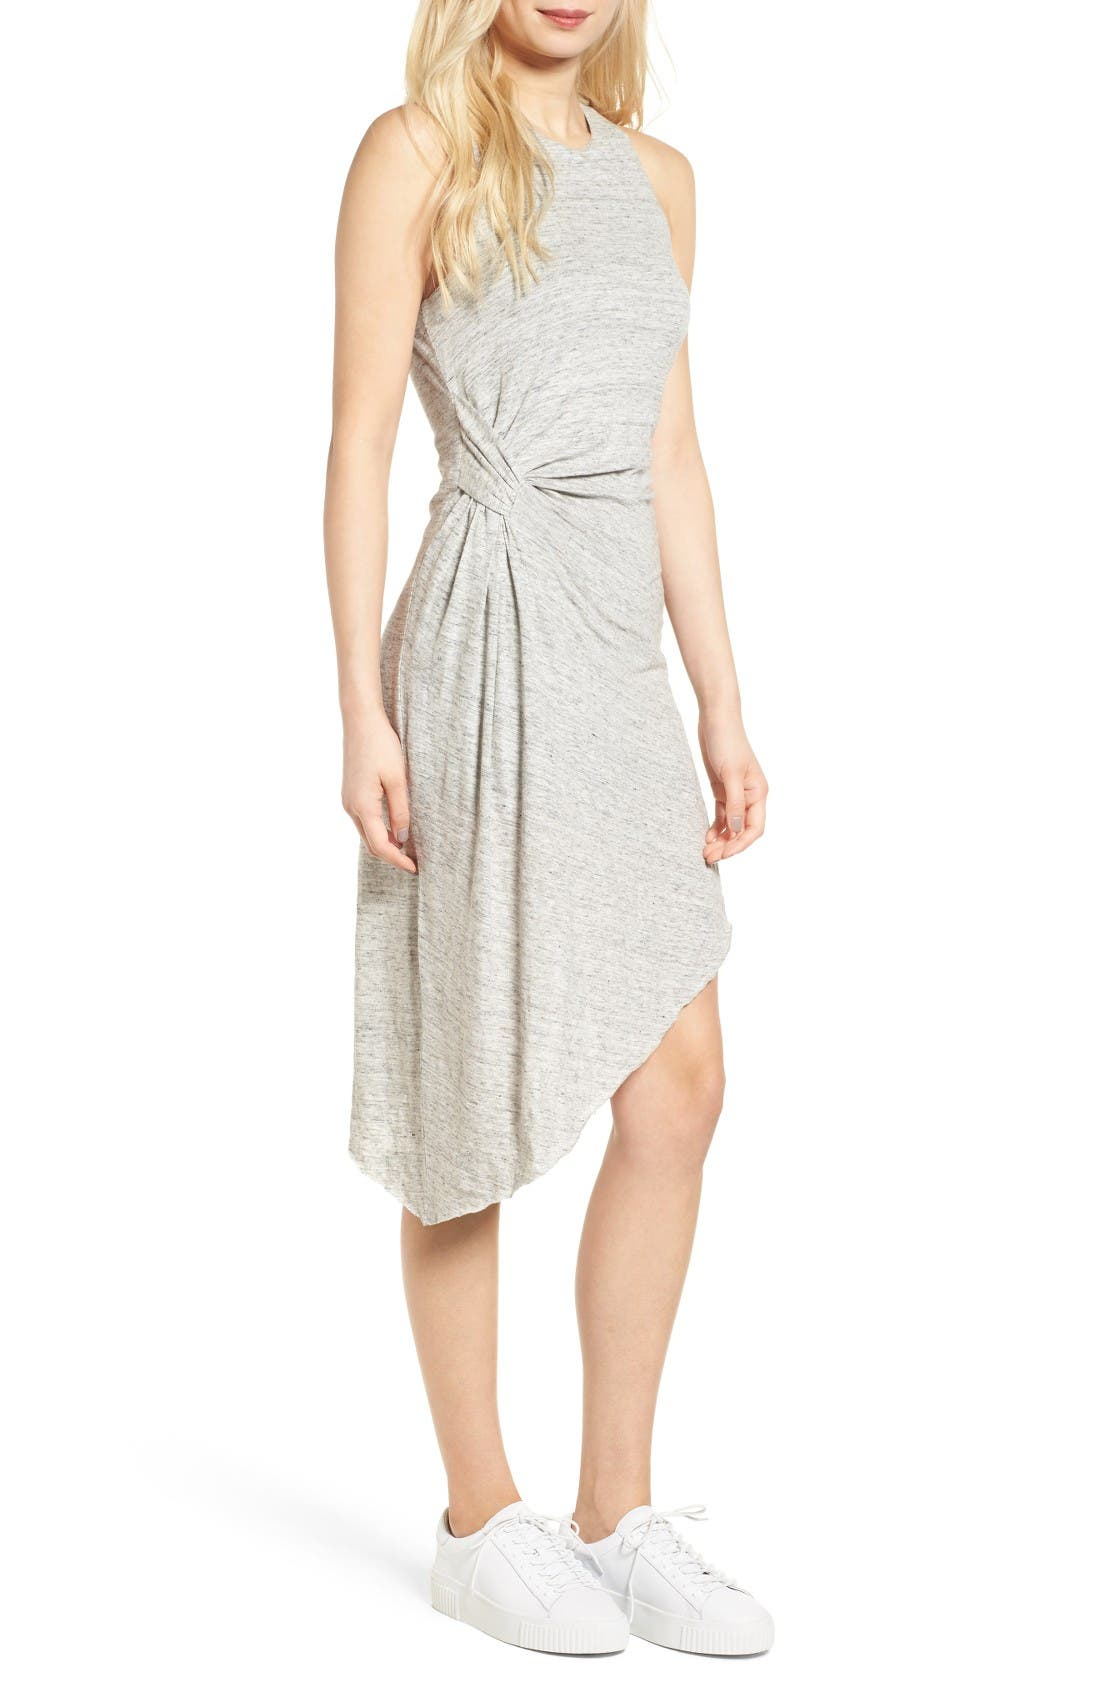 Alternate Image 1 Selected - KENDALL + KYLIE Asymmetrical Ruched Dress